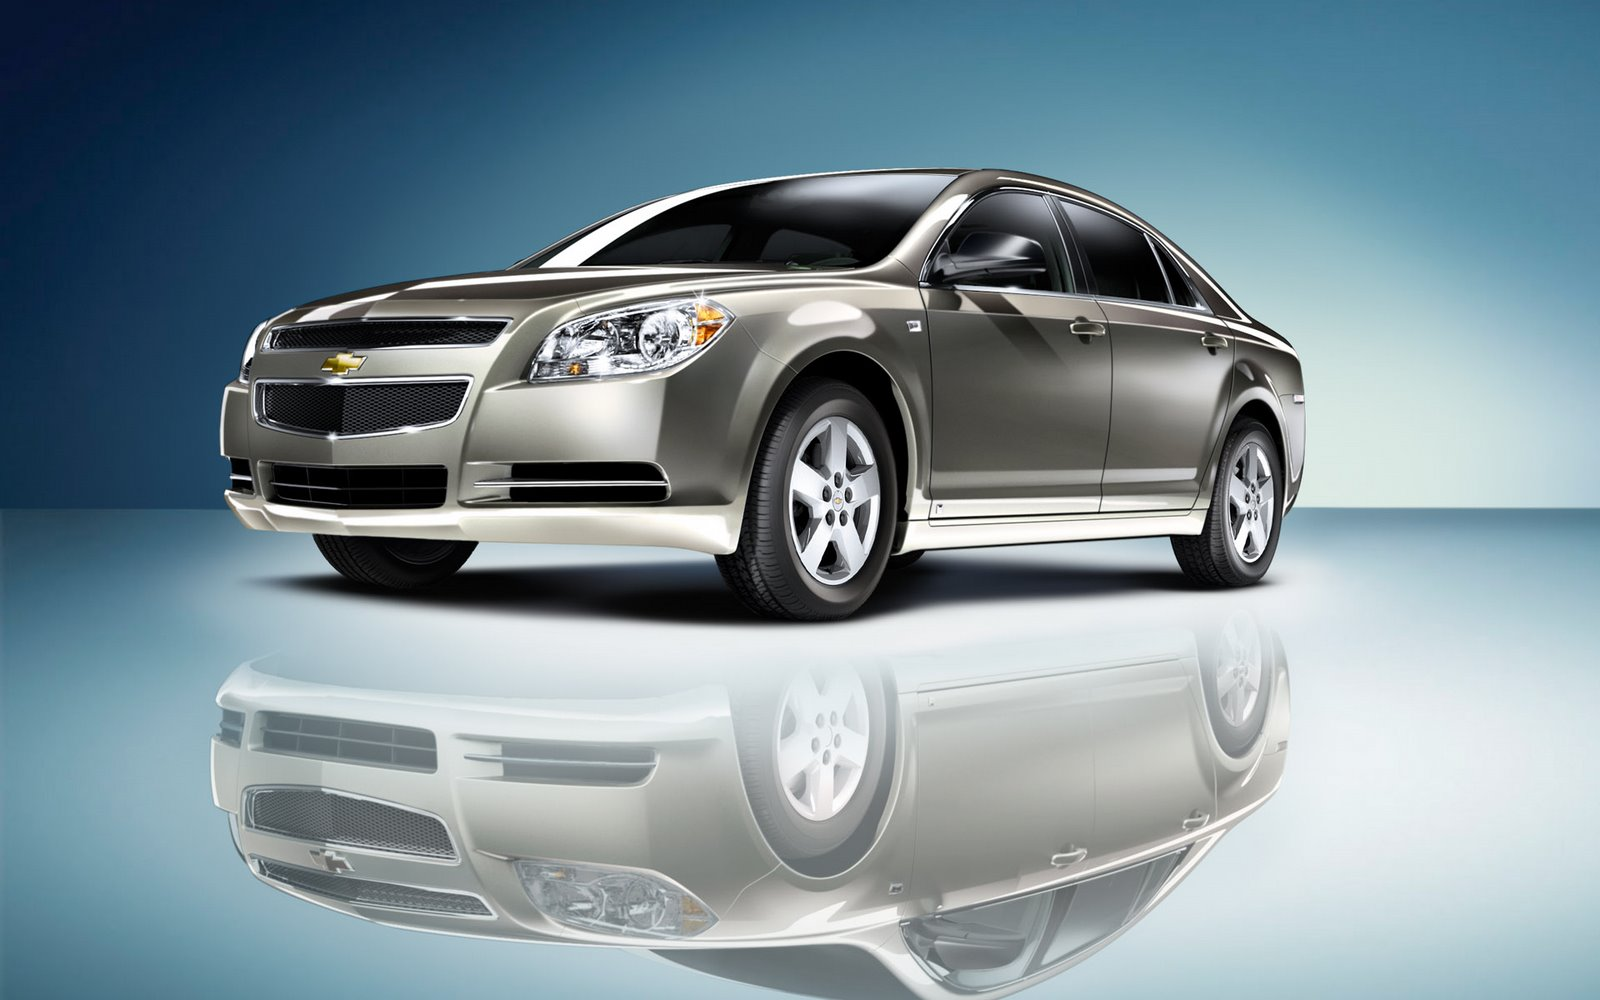 2012 Chevy Malibu 2012 Chevrolet Malibu   Reviews, Price, Specifications, Photos